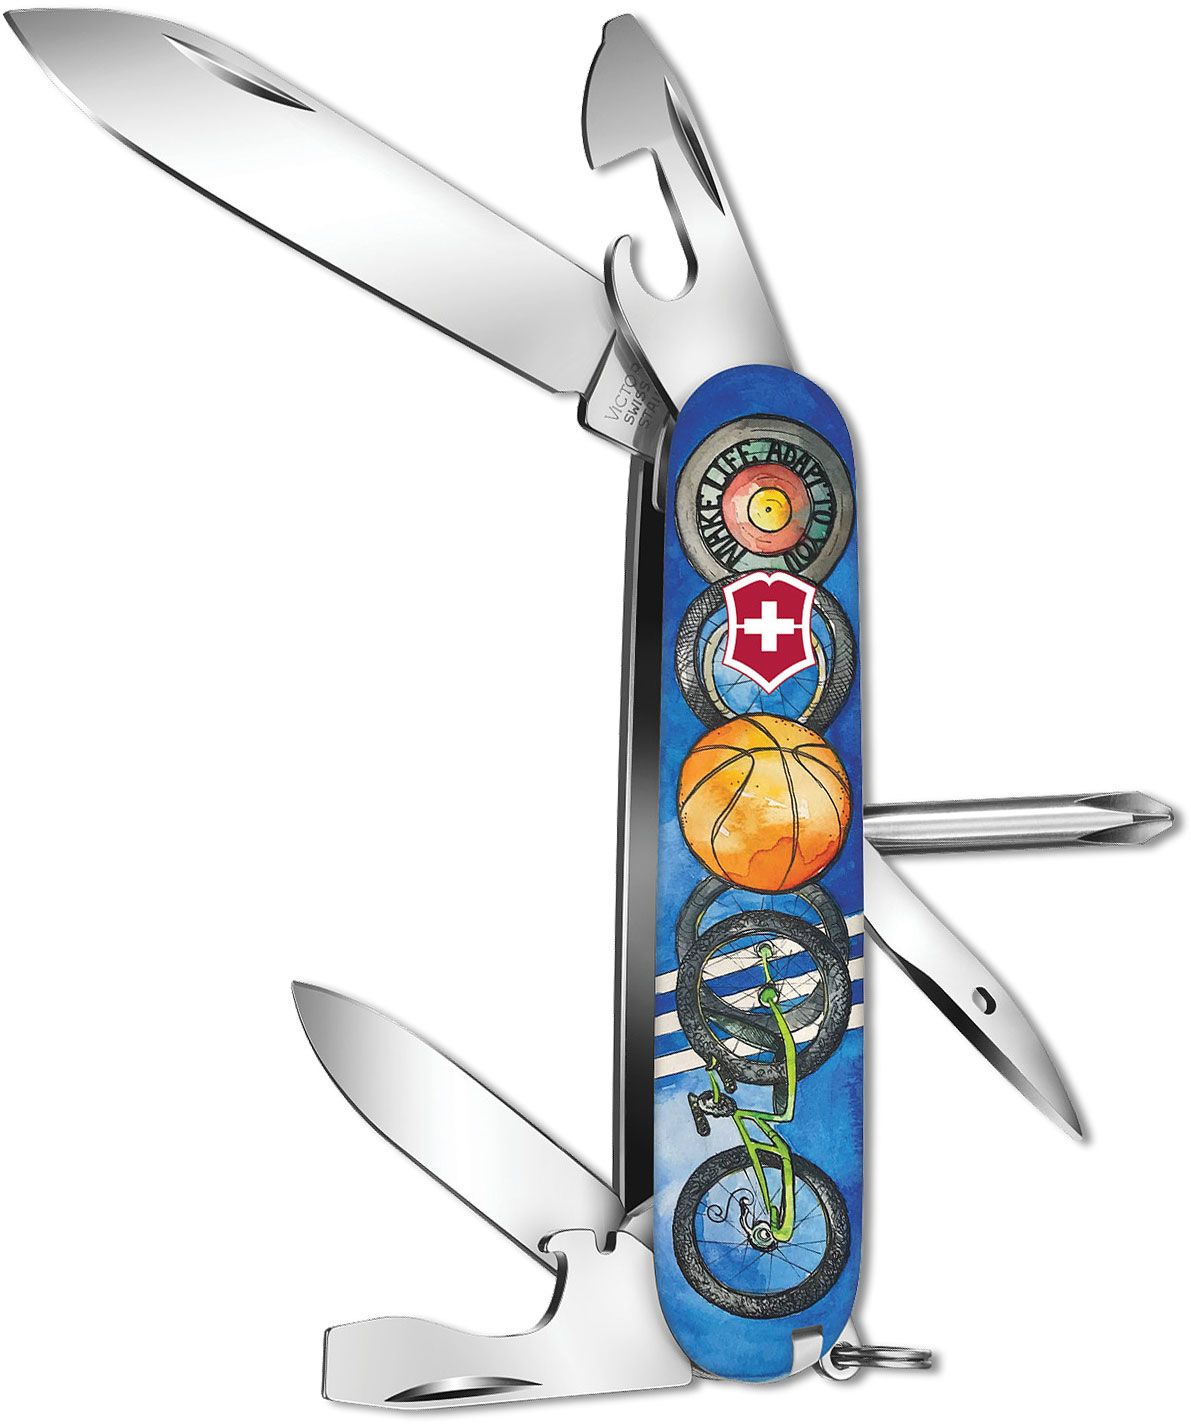 Victorinox Swiss Army Wounded Warrior Project Tinker Multi-Tool, Sports, 3.58 inch Closed, Gift Box